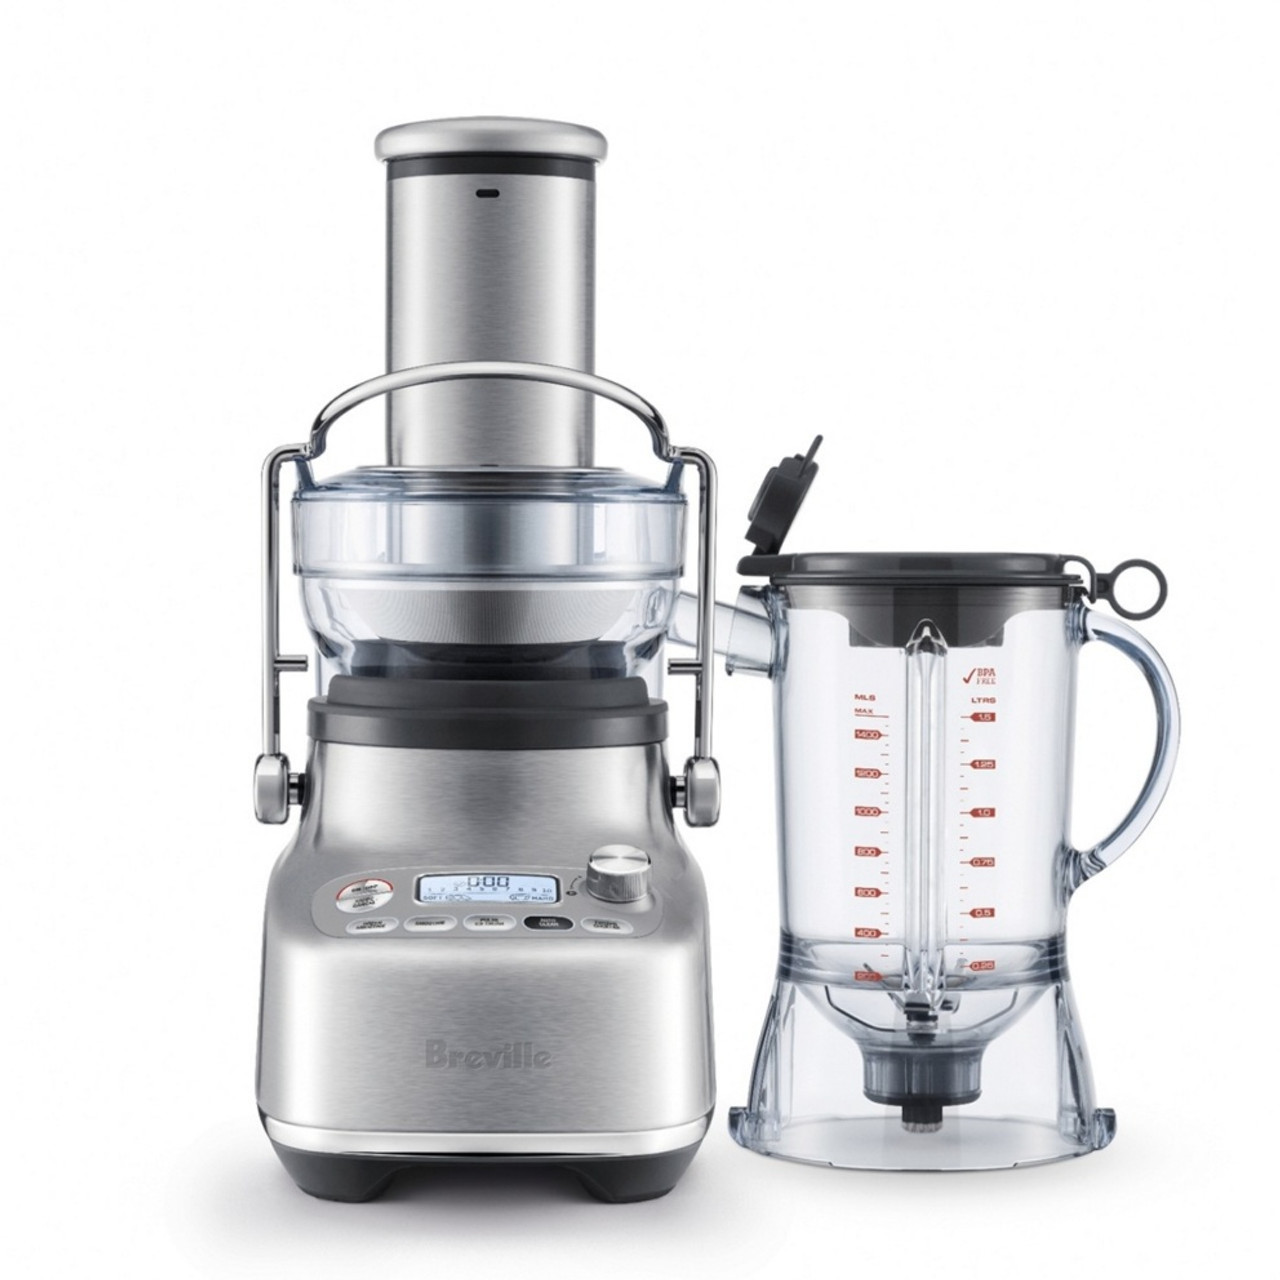 Breville BJB815BSS the 3X Bluicer™ Pro Blender, Juicer and Bluicer